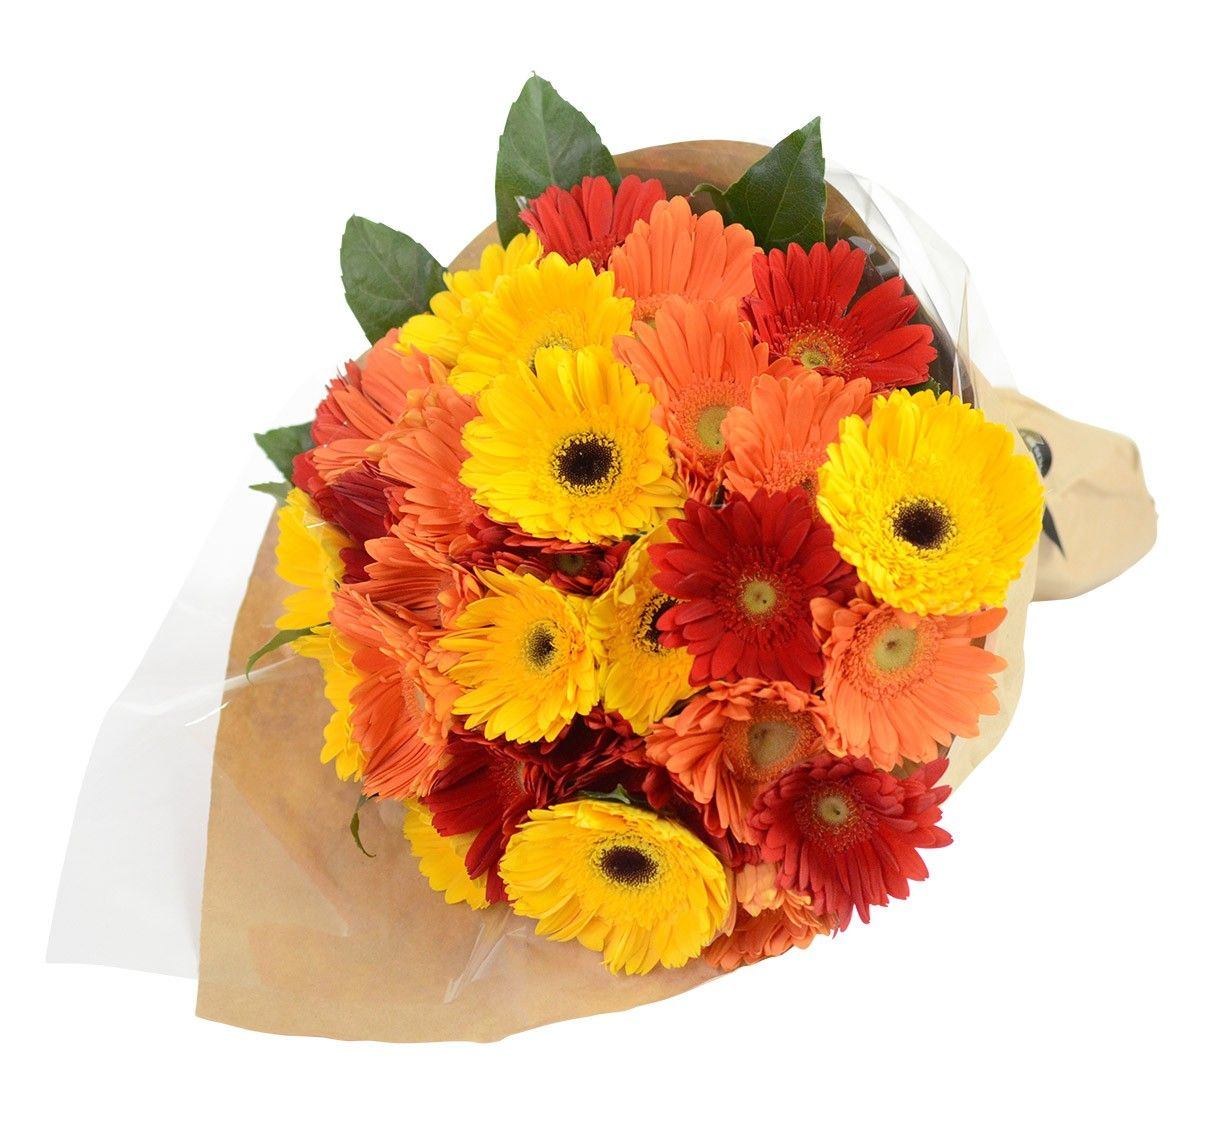 Mixed Gerberas Bouquet Gift Flowers SG (With images